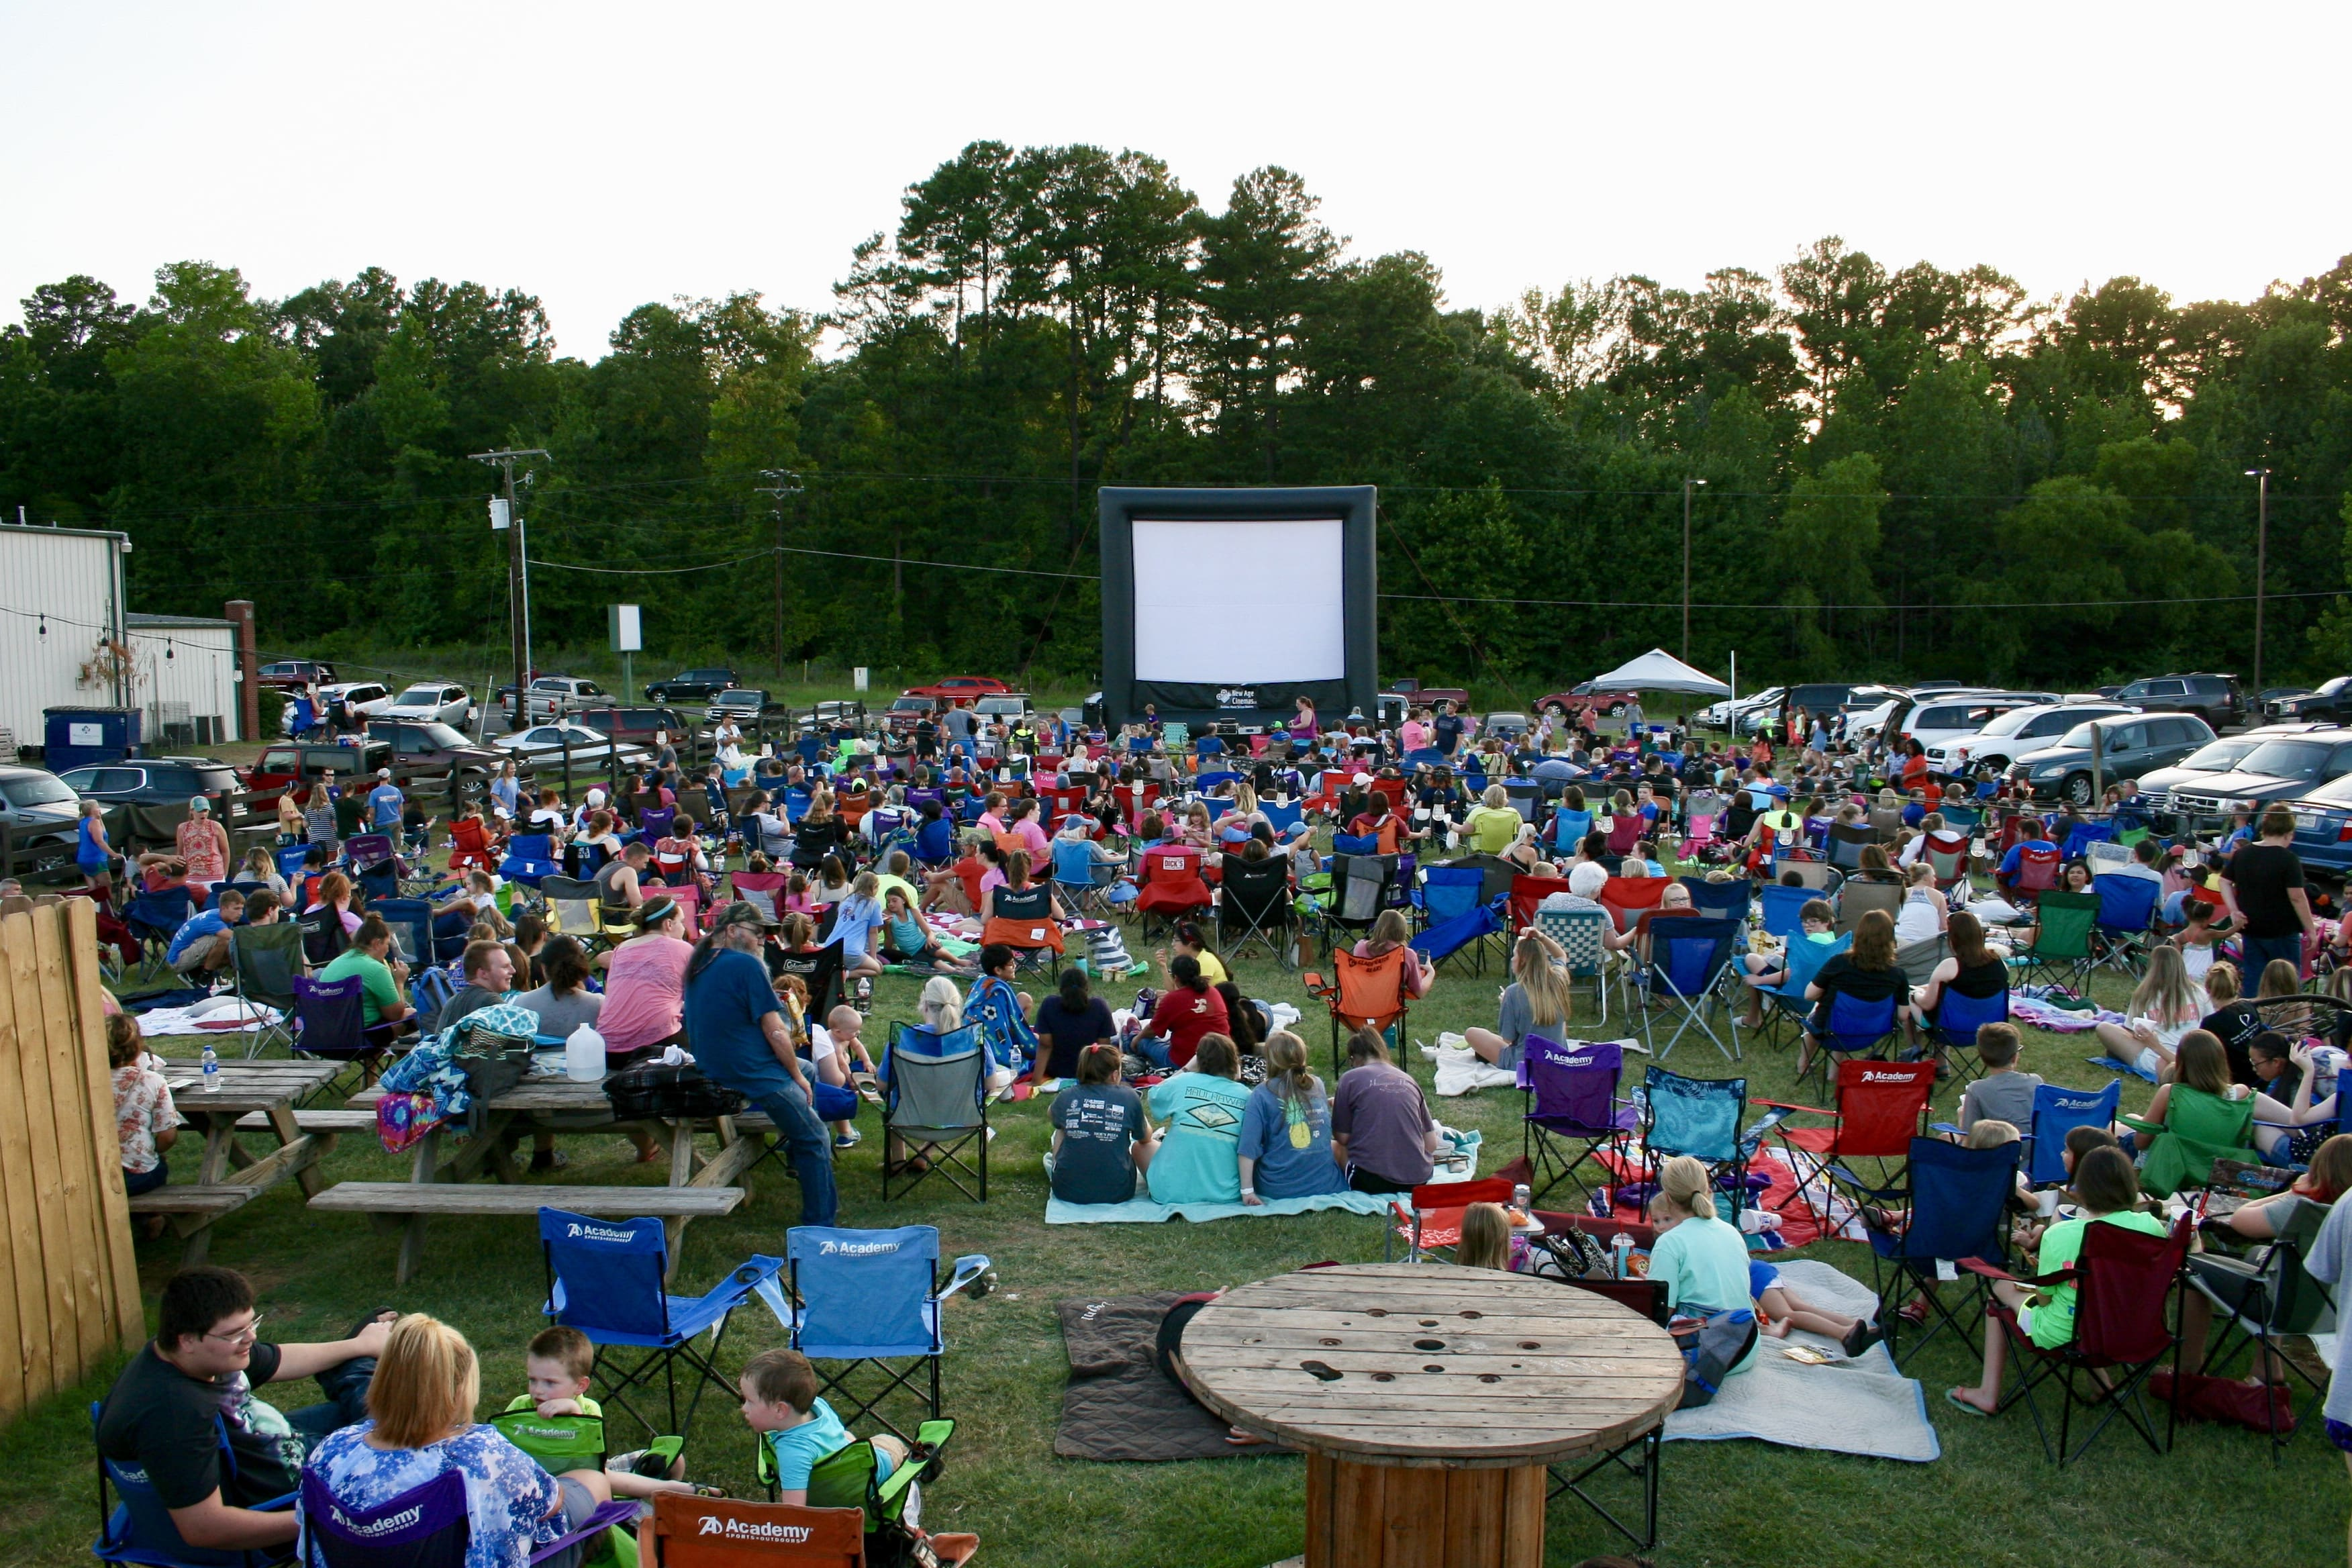 Outdoor Movie Night at Shivers Natural Snow in Longview Texas